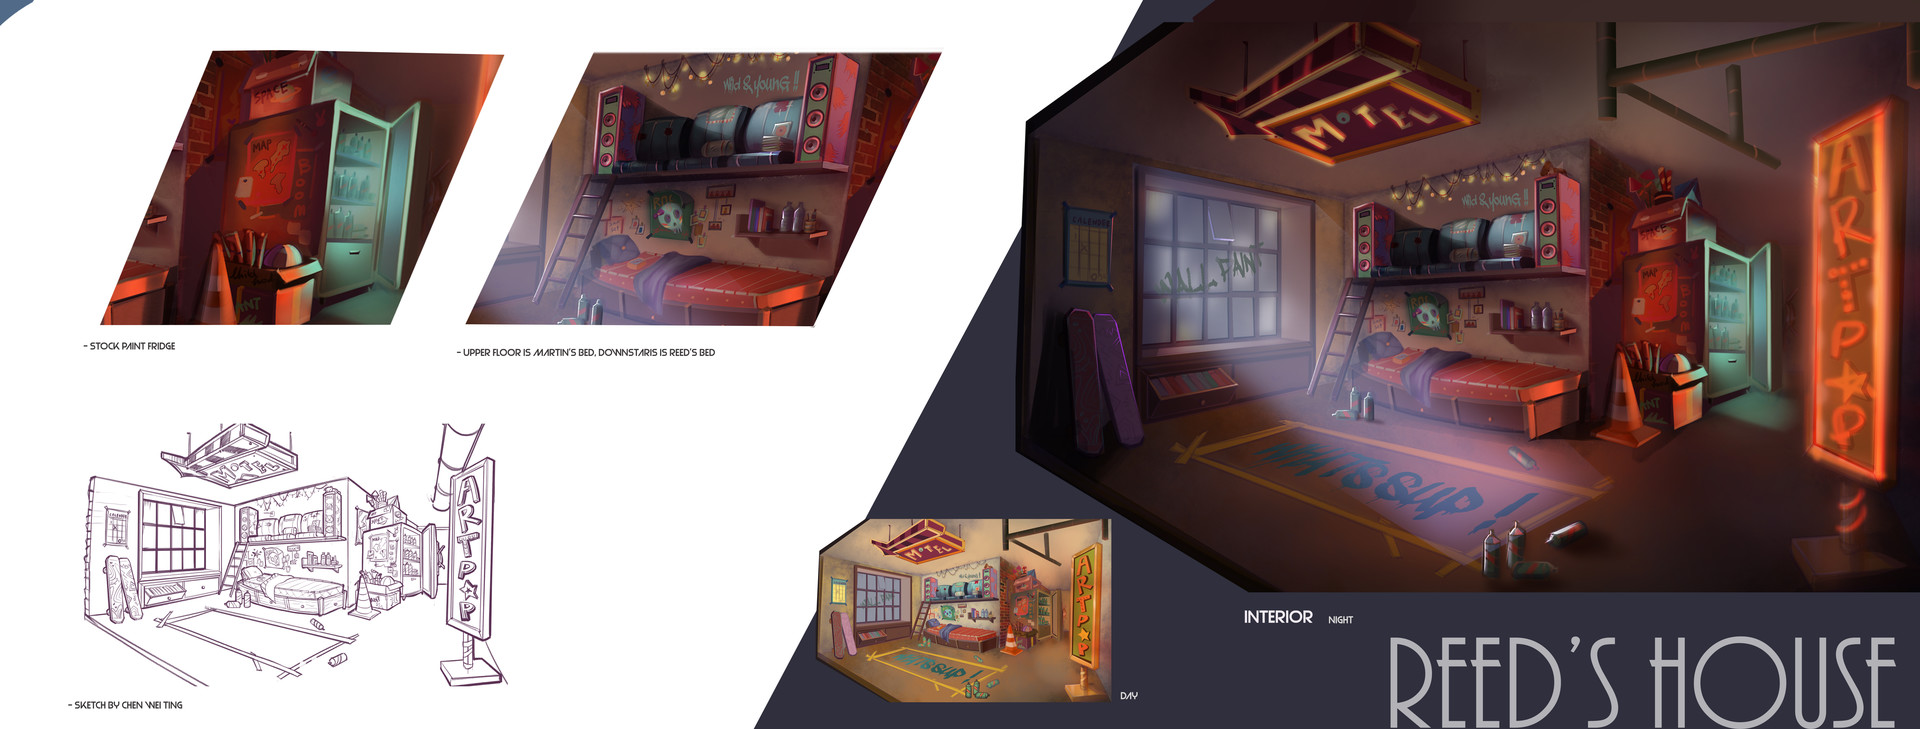 ArtStation - Viridian Protocol, Jessica Chen Wei Ting on house model design, house art design, product page design, house autocad, house layout design, sketchup house design, house architecture design, green building design, house perspective design, house studio design, house drawing, house construction, house green design, house plans with furniture layouts, house painting design, house light design, house study design, house design blueprint, house graphic design, house template,